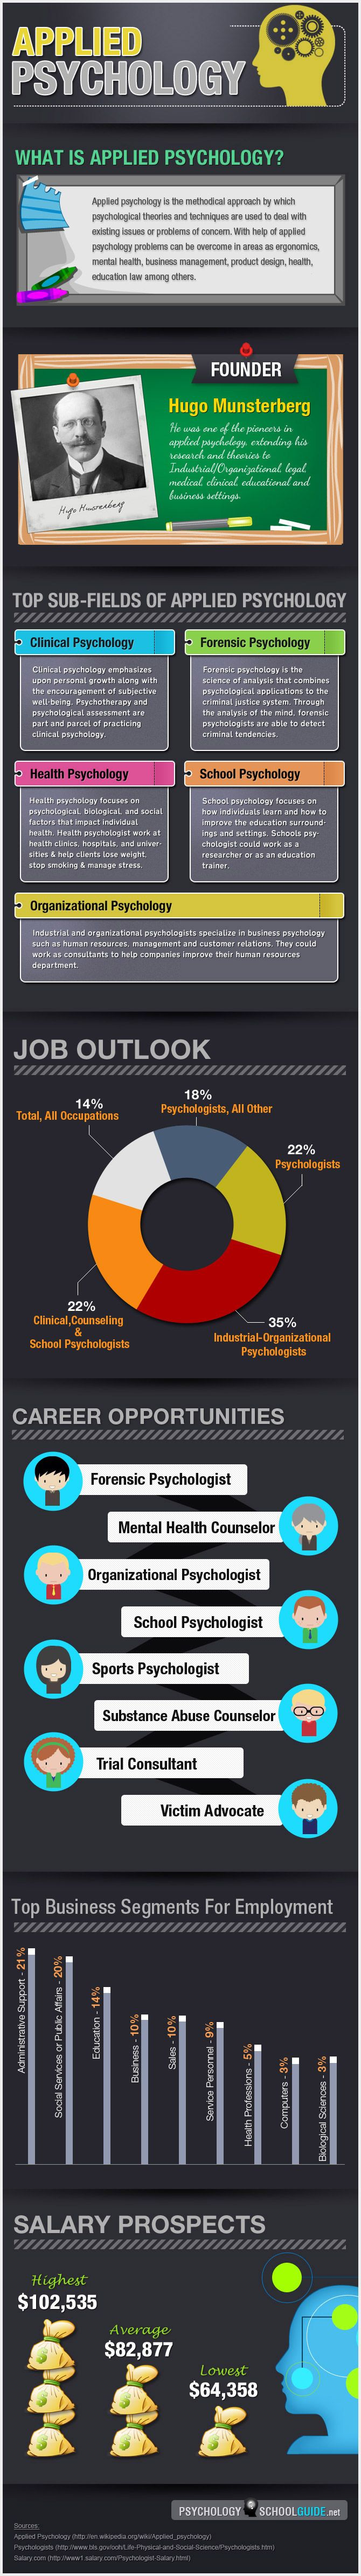 Applied Psychology: Theories and Principles.     This is the area where I did my professional training.